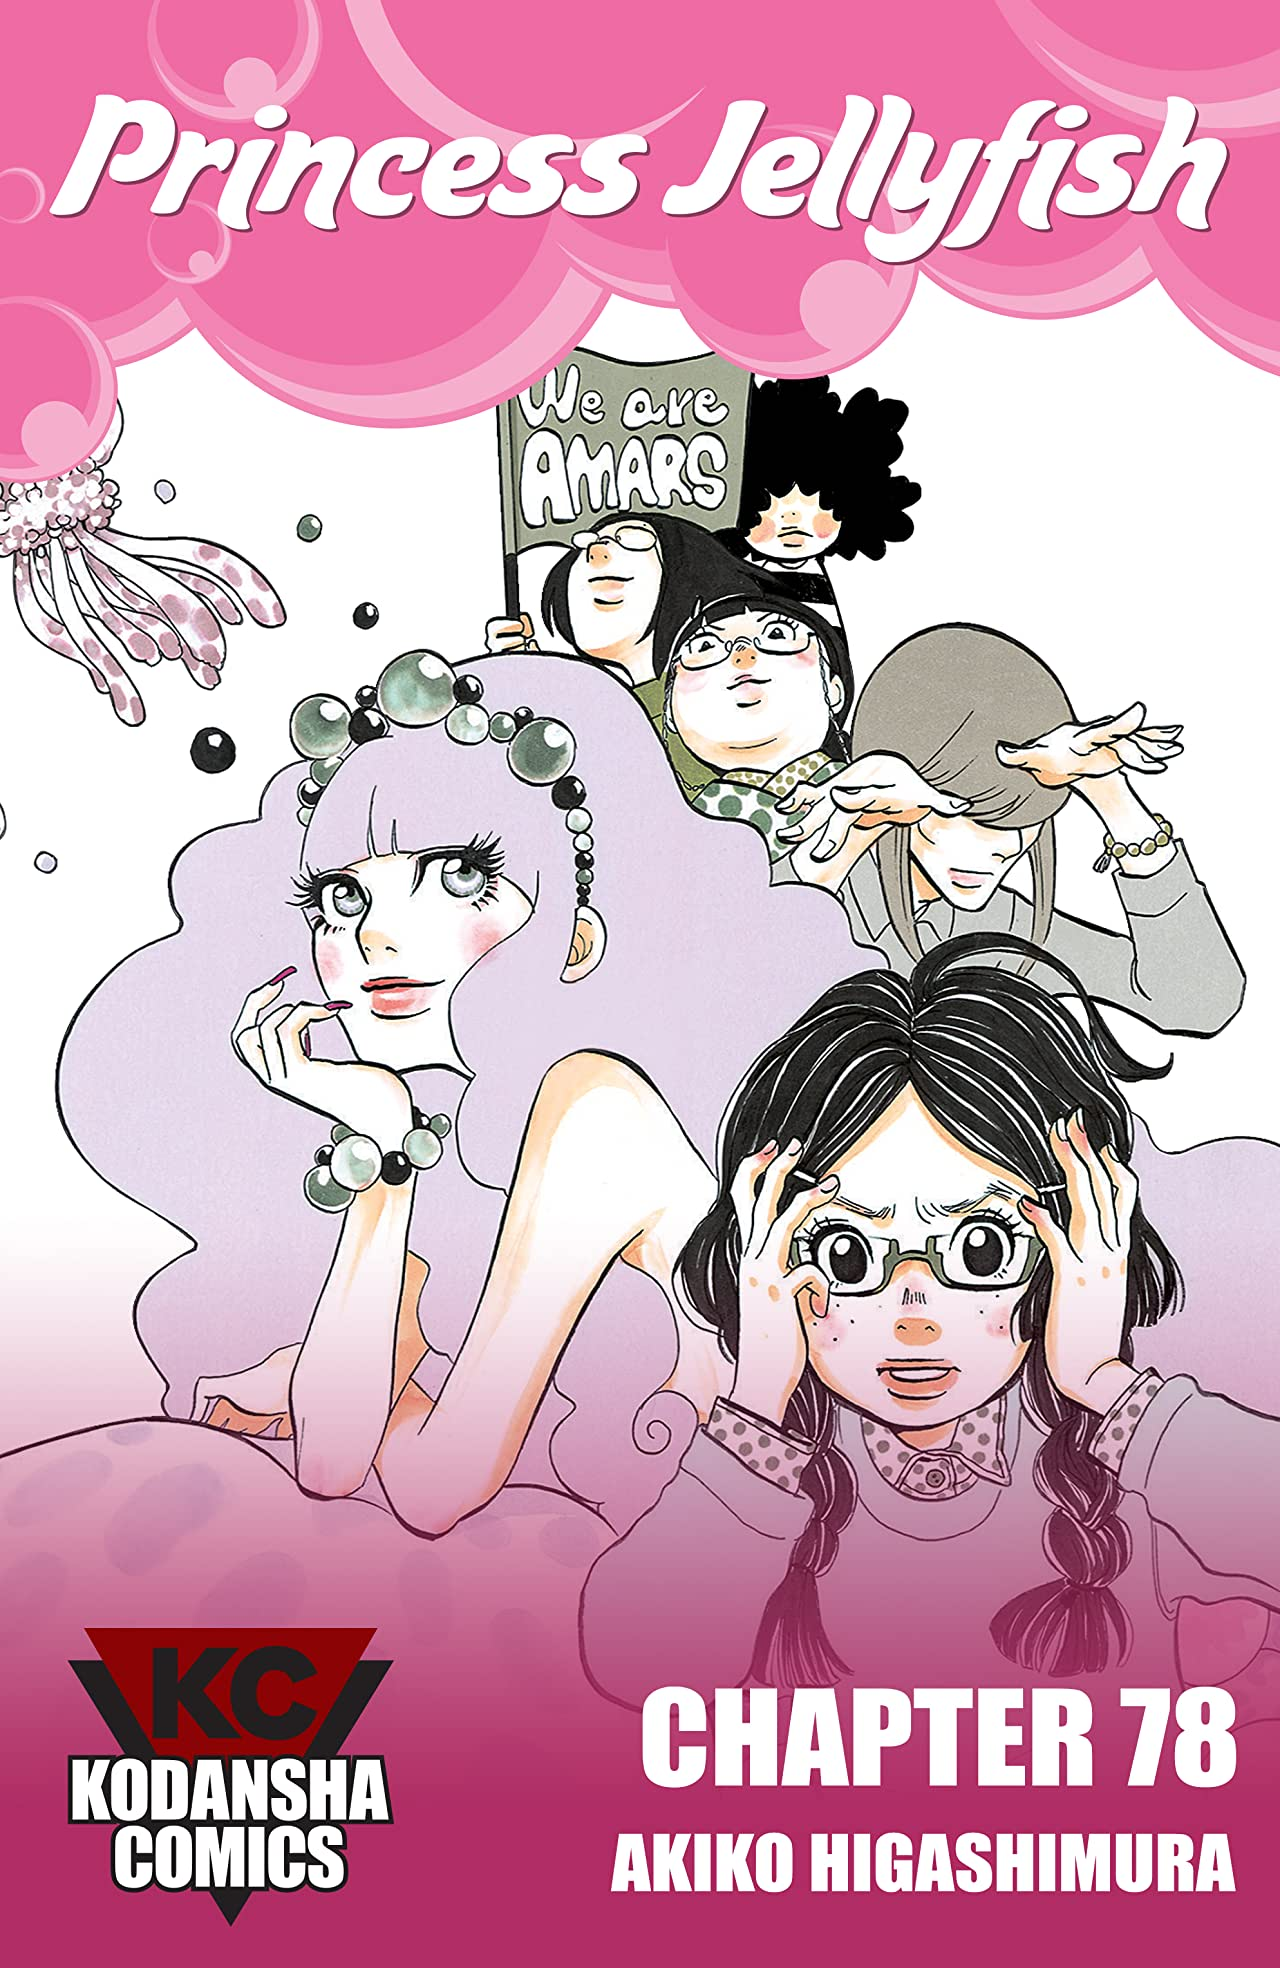 Princess Jellyfish #78